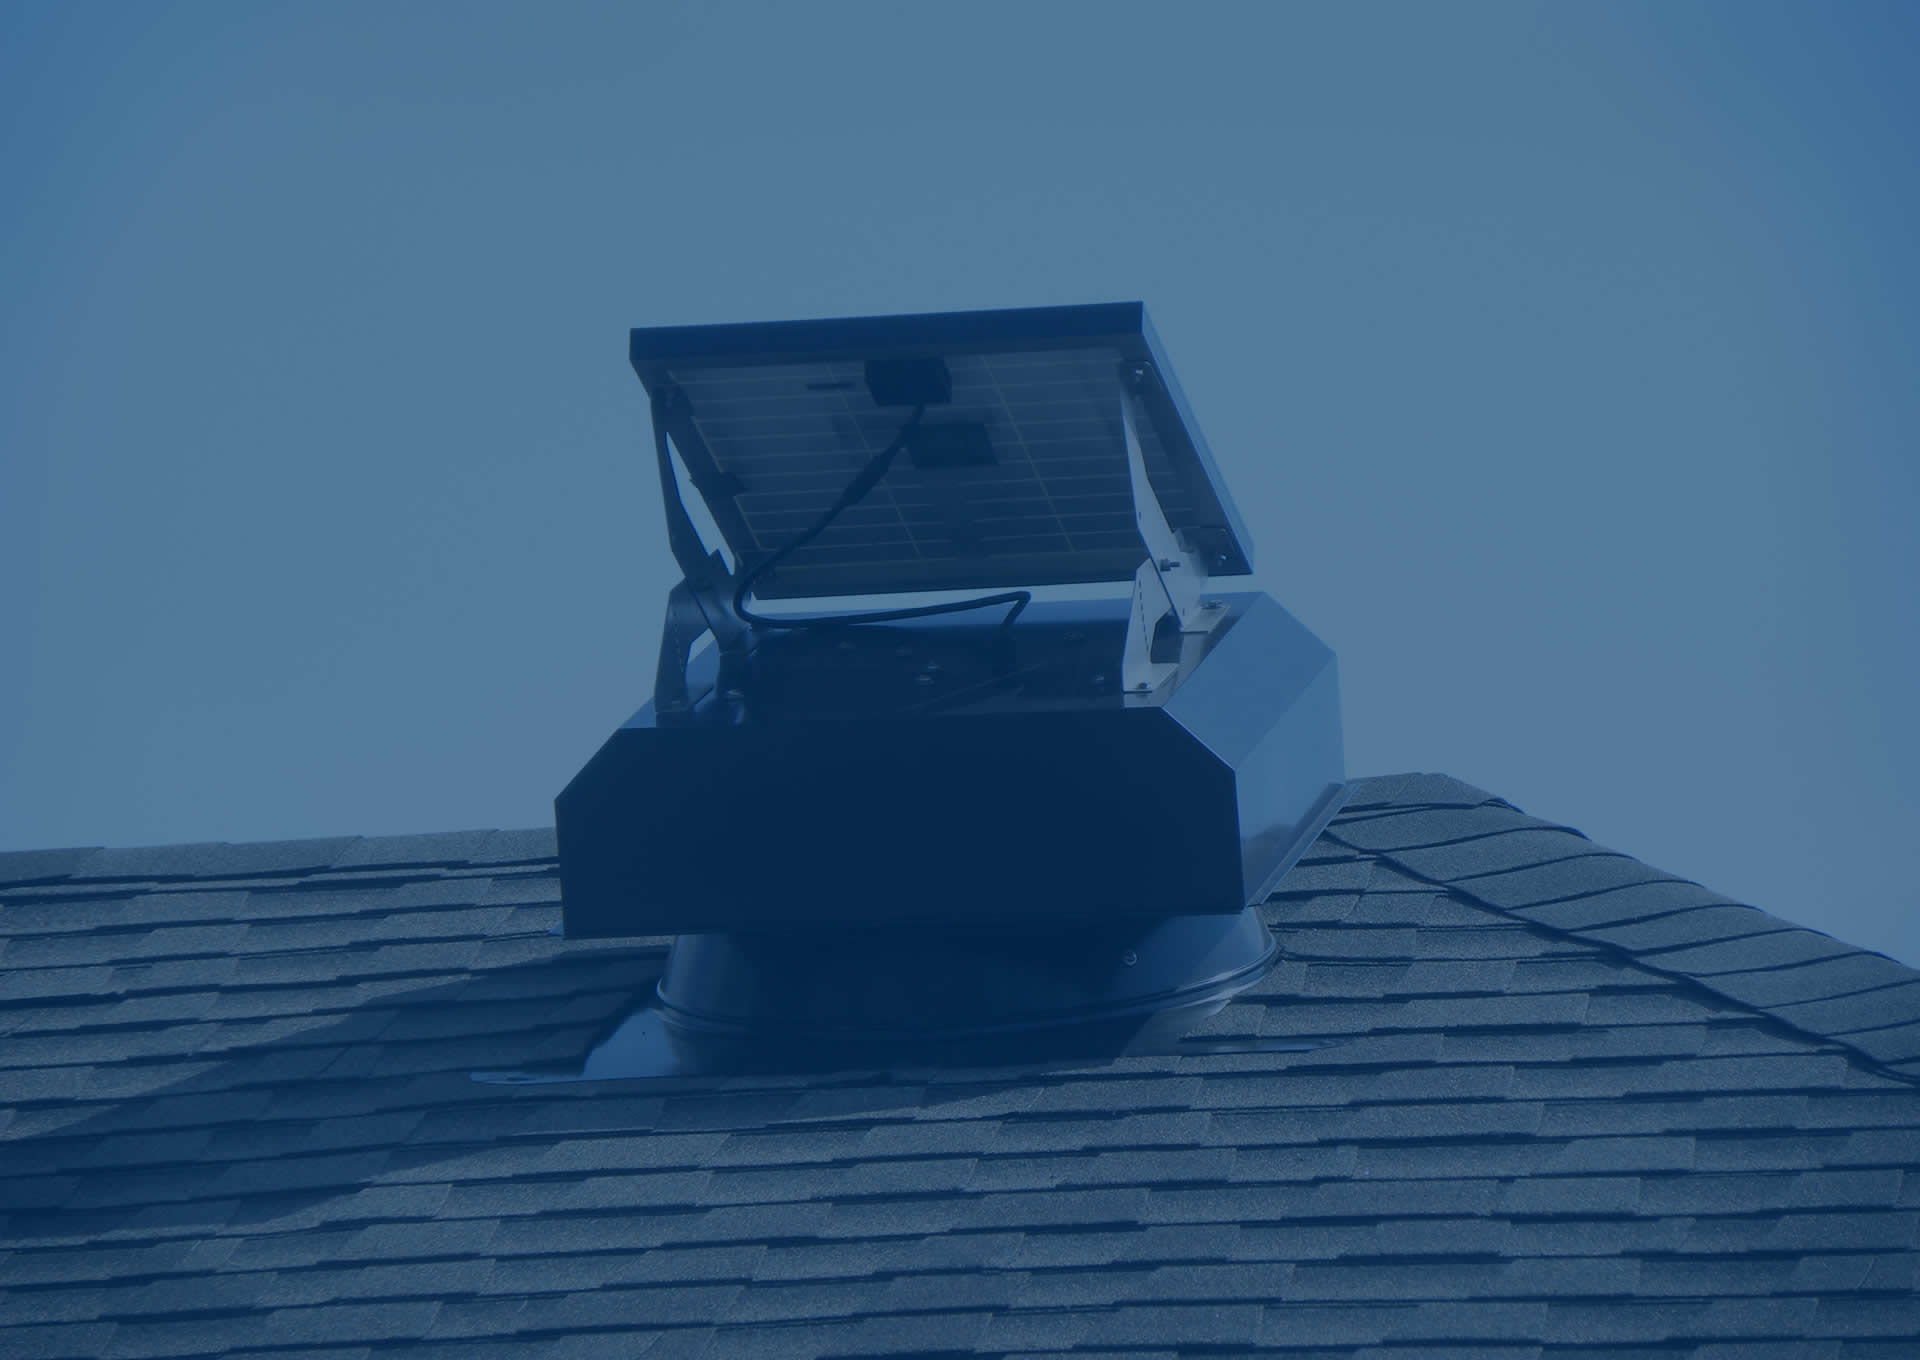 ... Solar Attic Fans Are The Latest Technology In Roof Ventilation And  Green Building Standards.